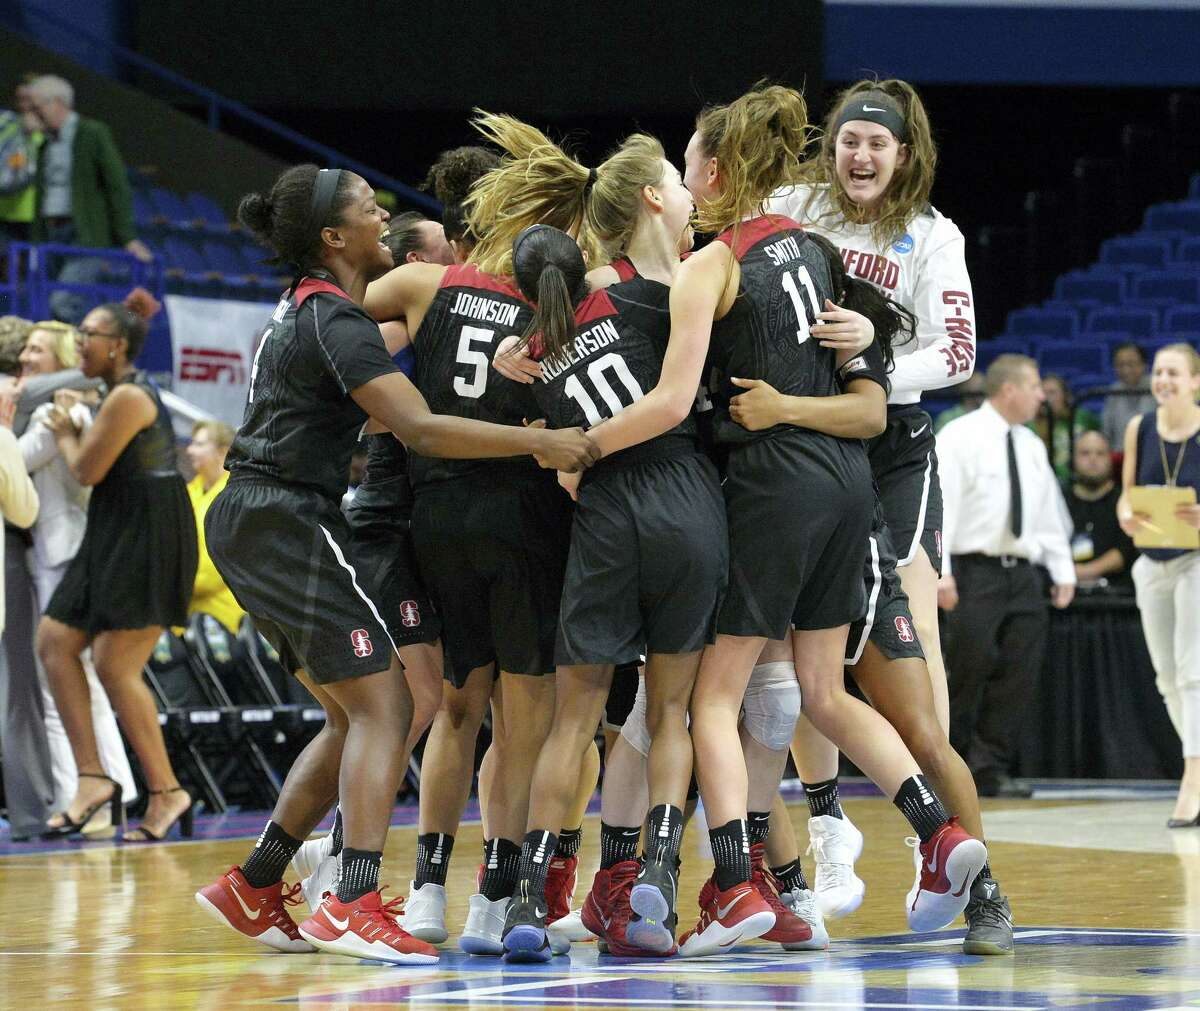 Members of the Stanford women's team celebrate after defeating Notre Dame to advance to the Final Four on Sunday.